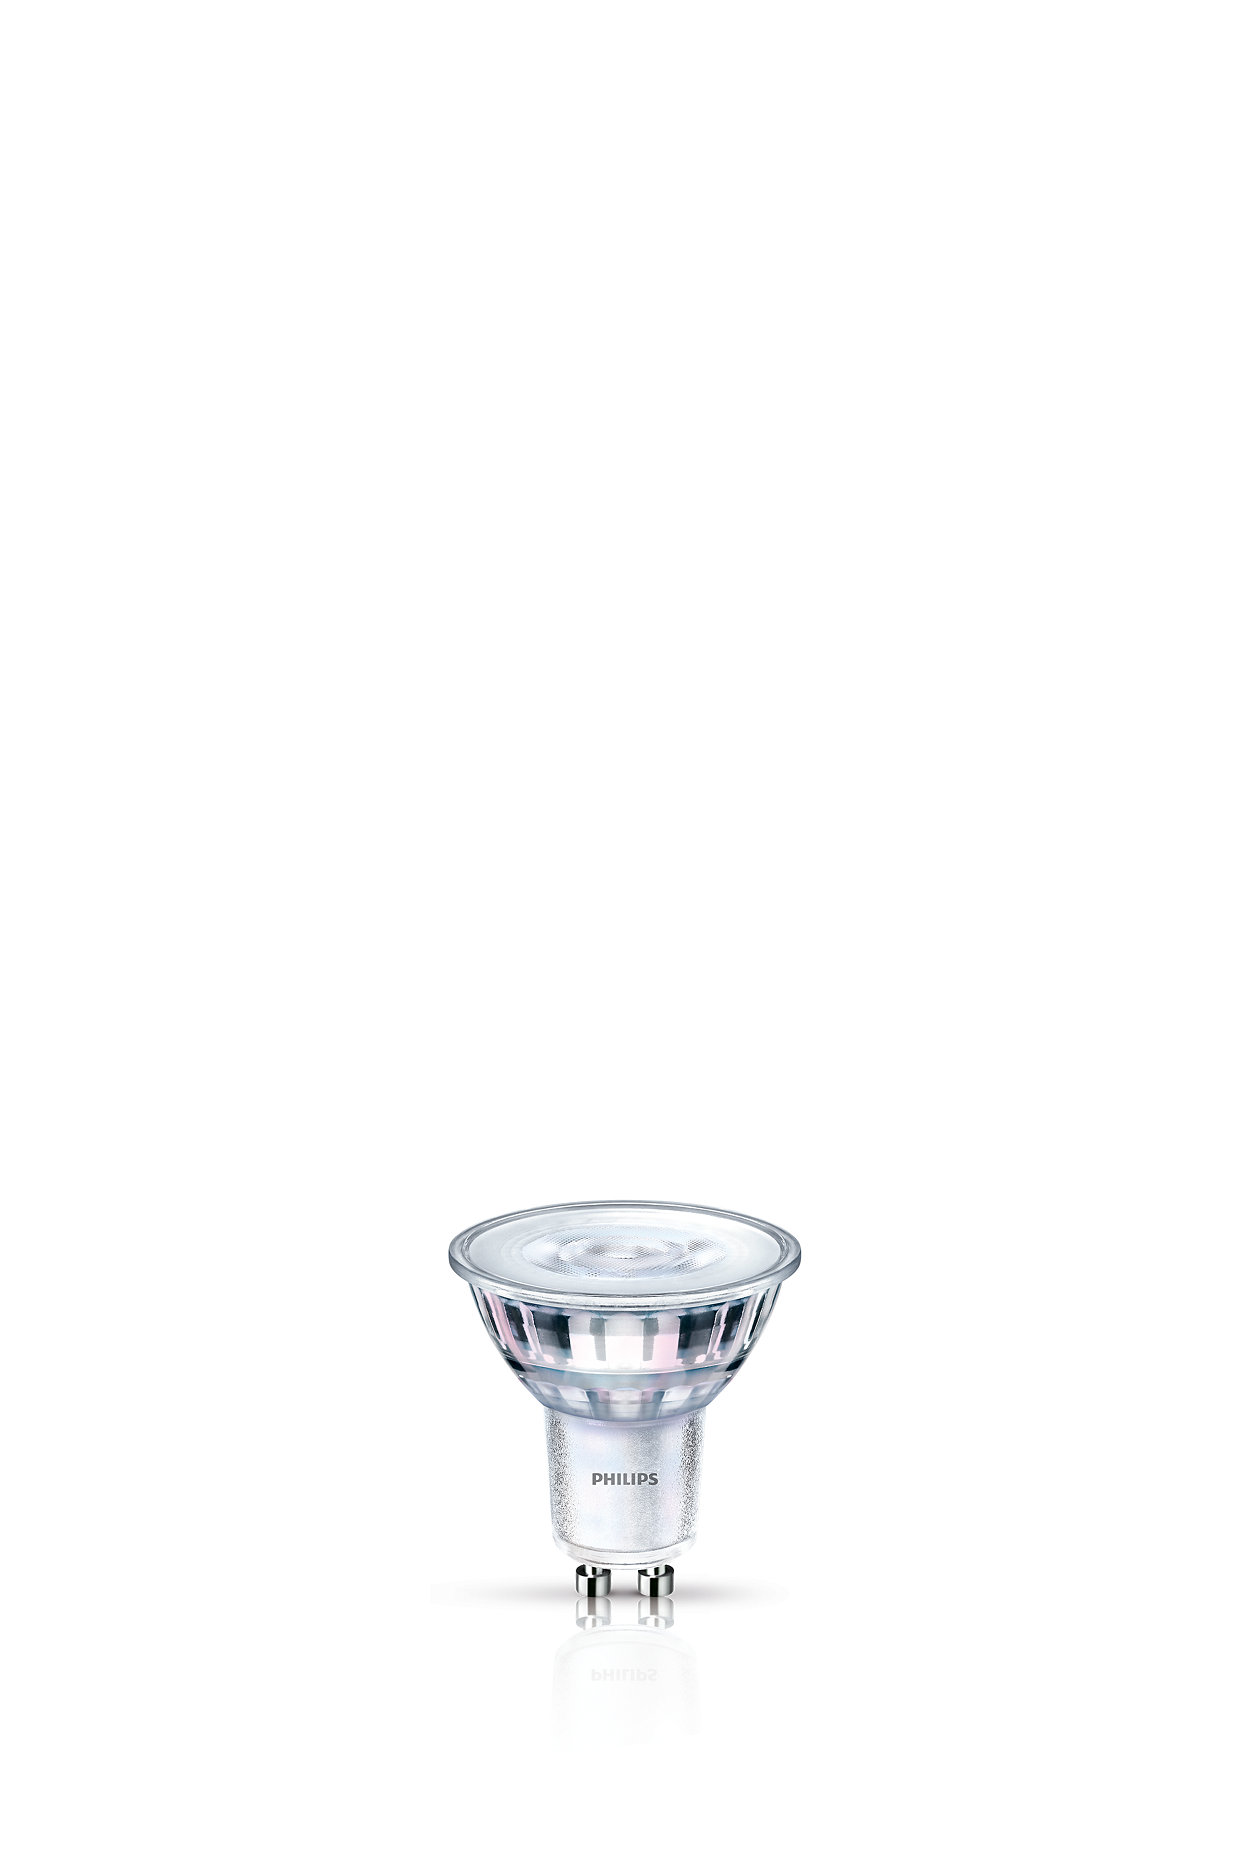 Dimmable LED light with a focused bright beam